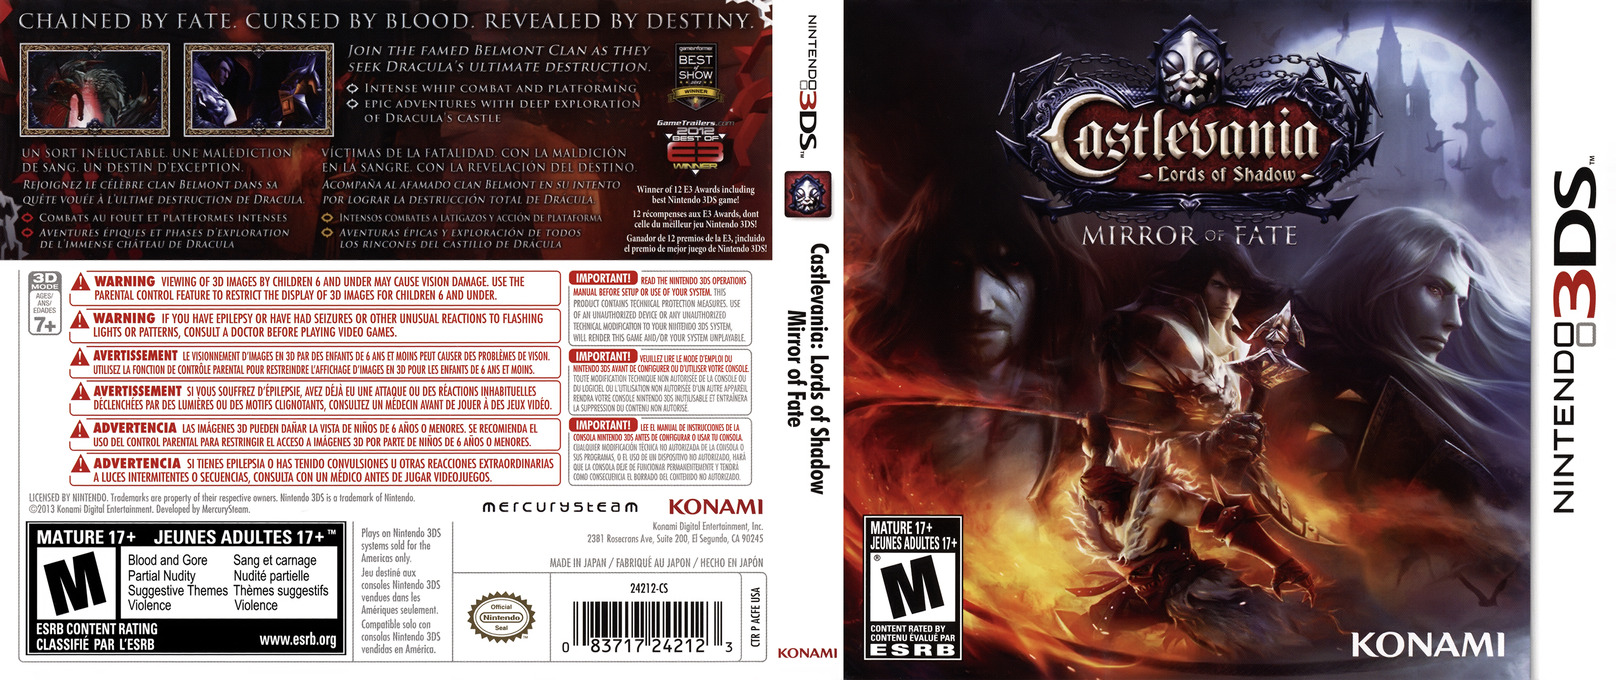 Castlevania - Lords of Shadow - Mirror of Fate 3DS coverfullHQ (ACFE)